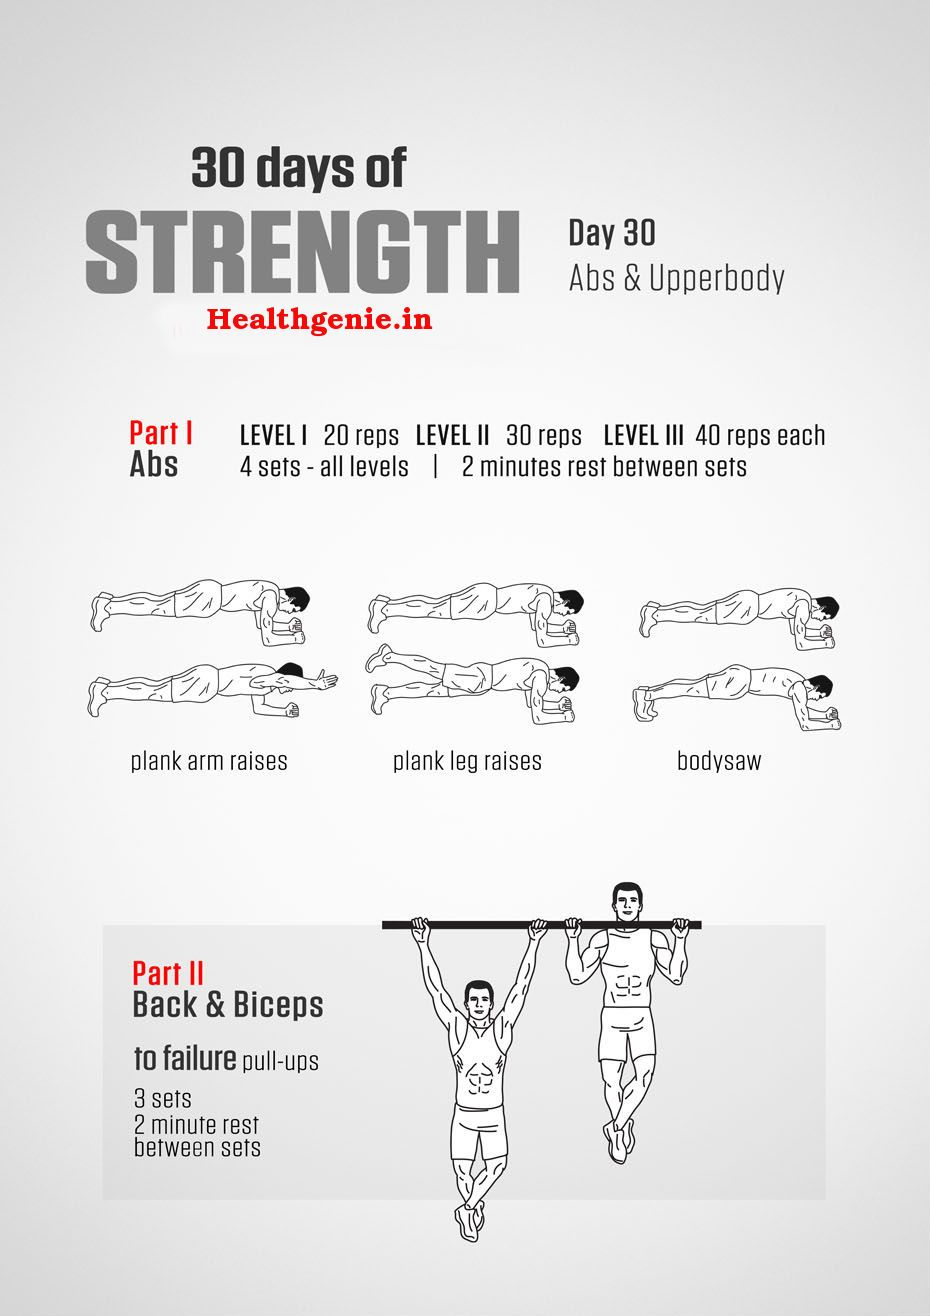 diet plan for strength and stamina